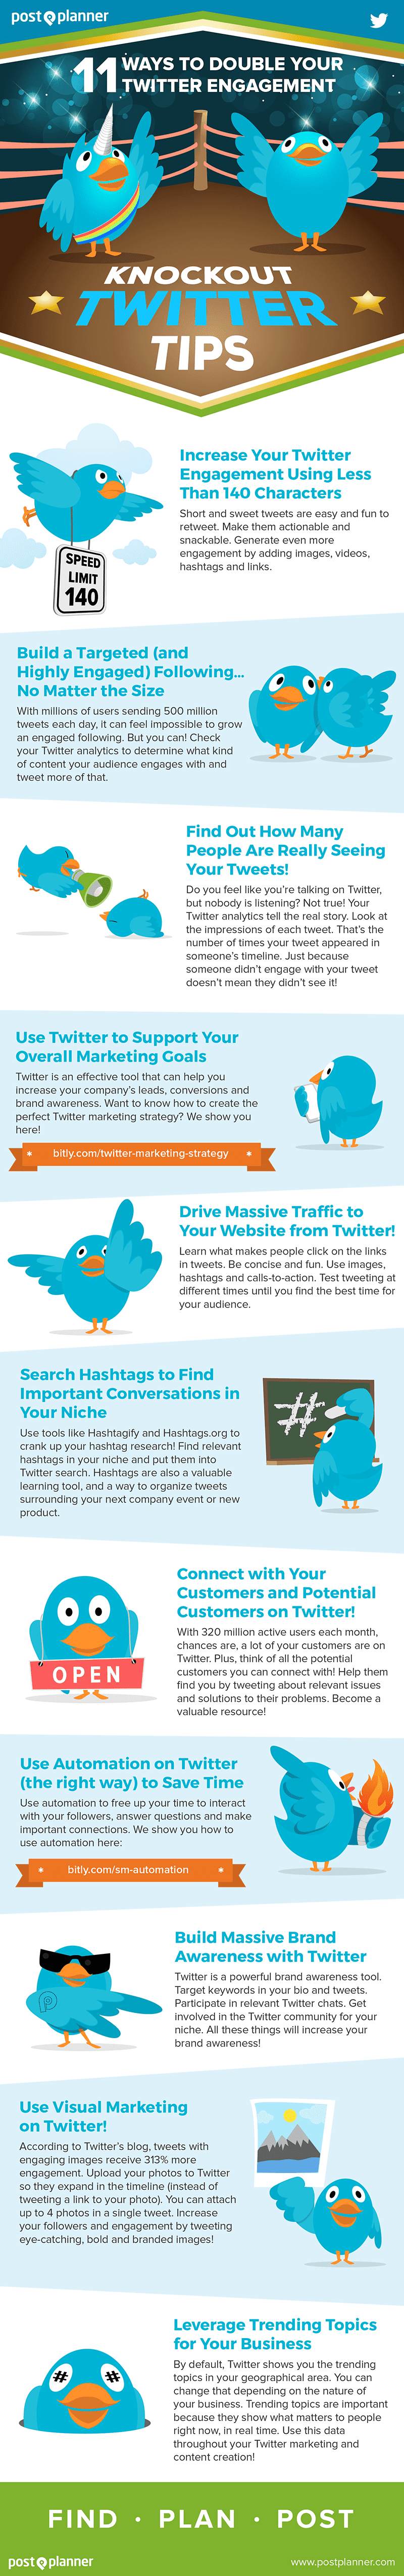 11 Ways To Double Your Twitter Engagement - #infographic